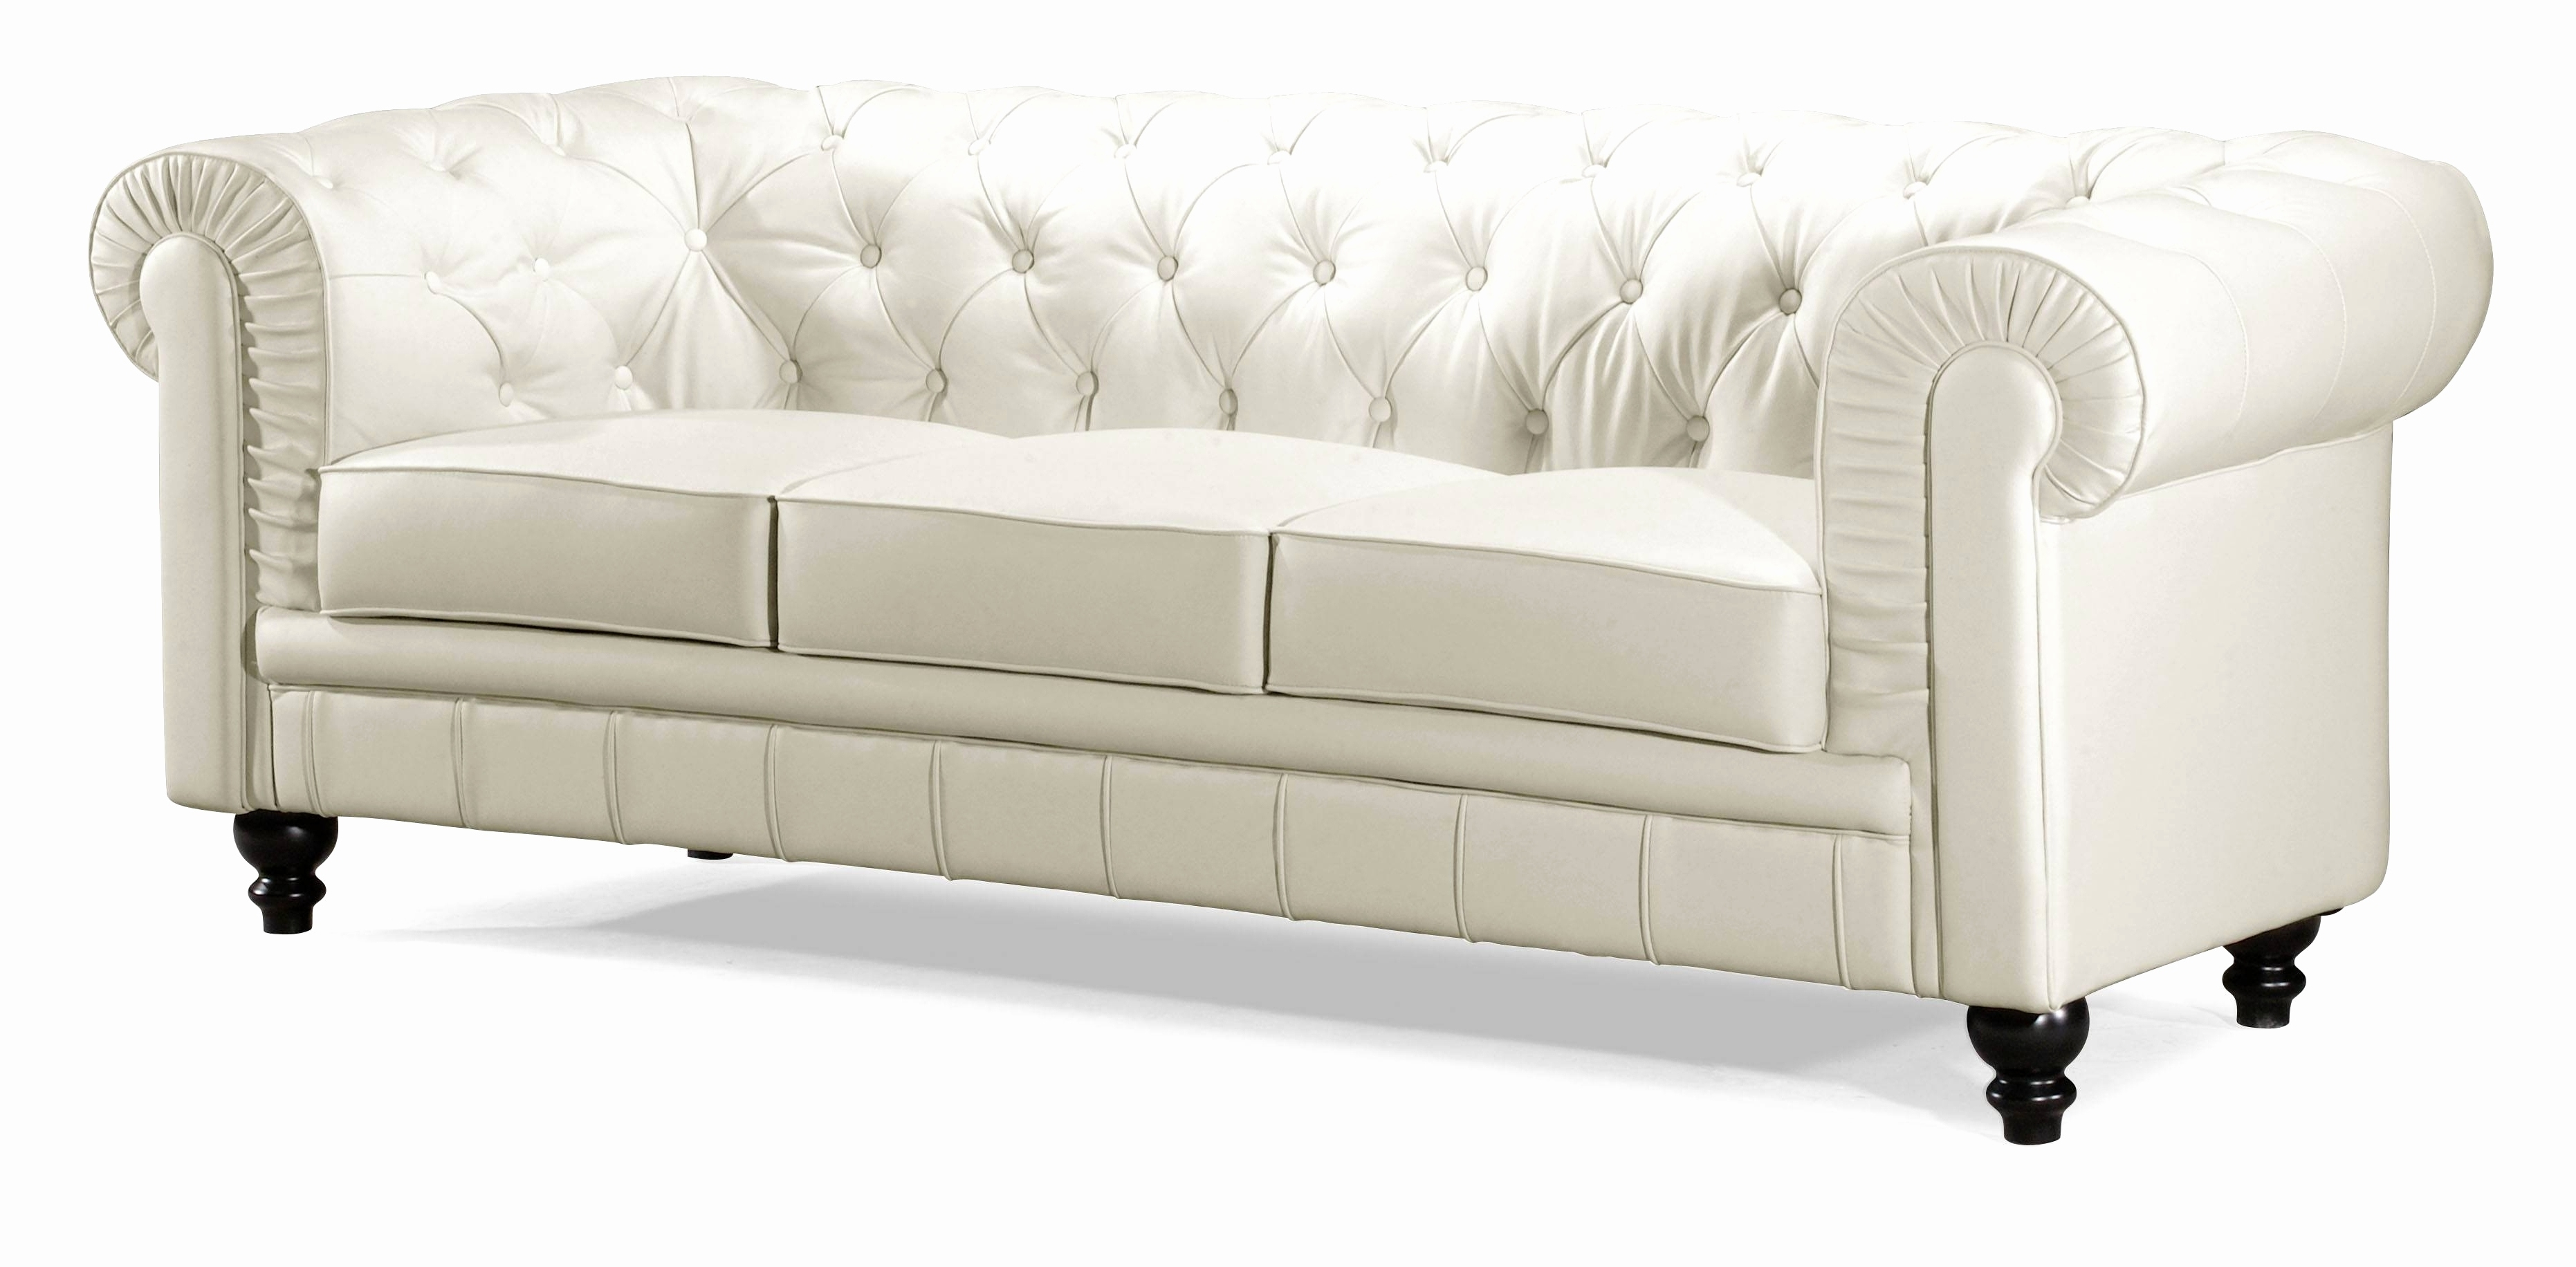 Popular Lovely Affordable Tufted Sofa 2018 – Couches And Sofas Ideas Inside Affordable Tufted Sofas (View 8 of 20)